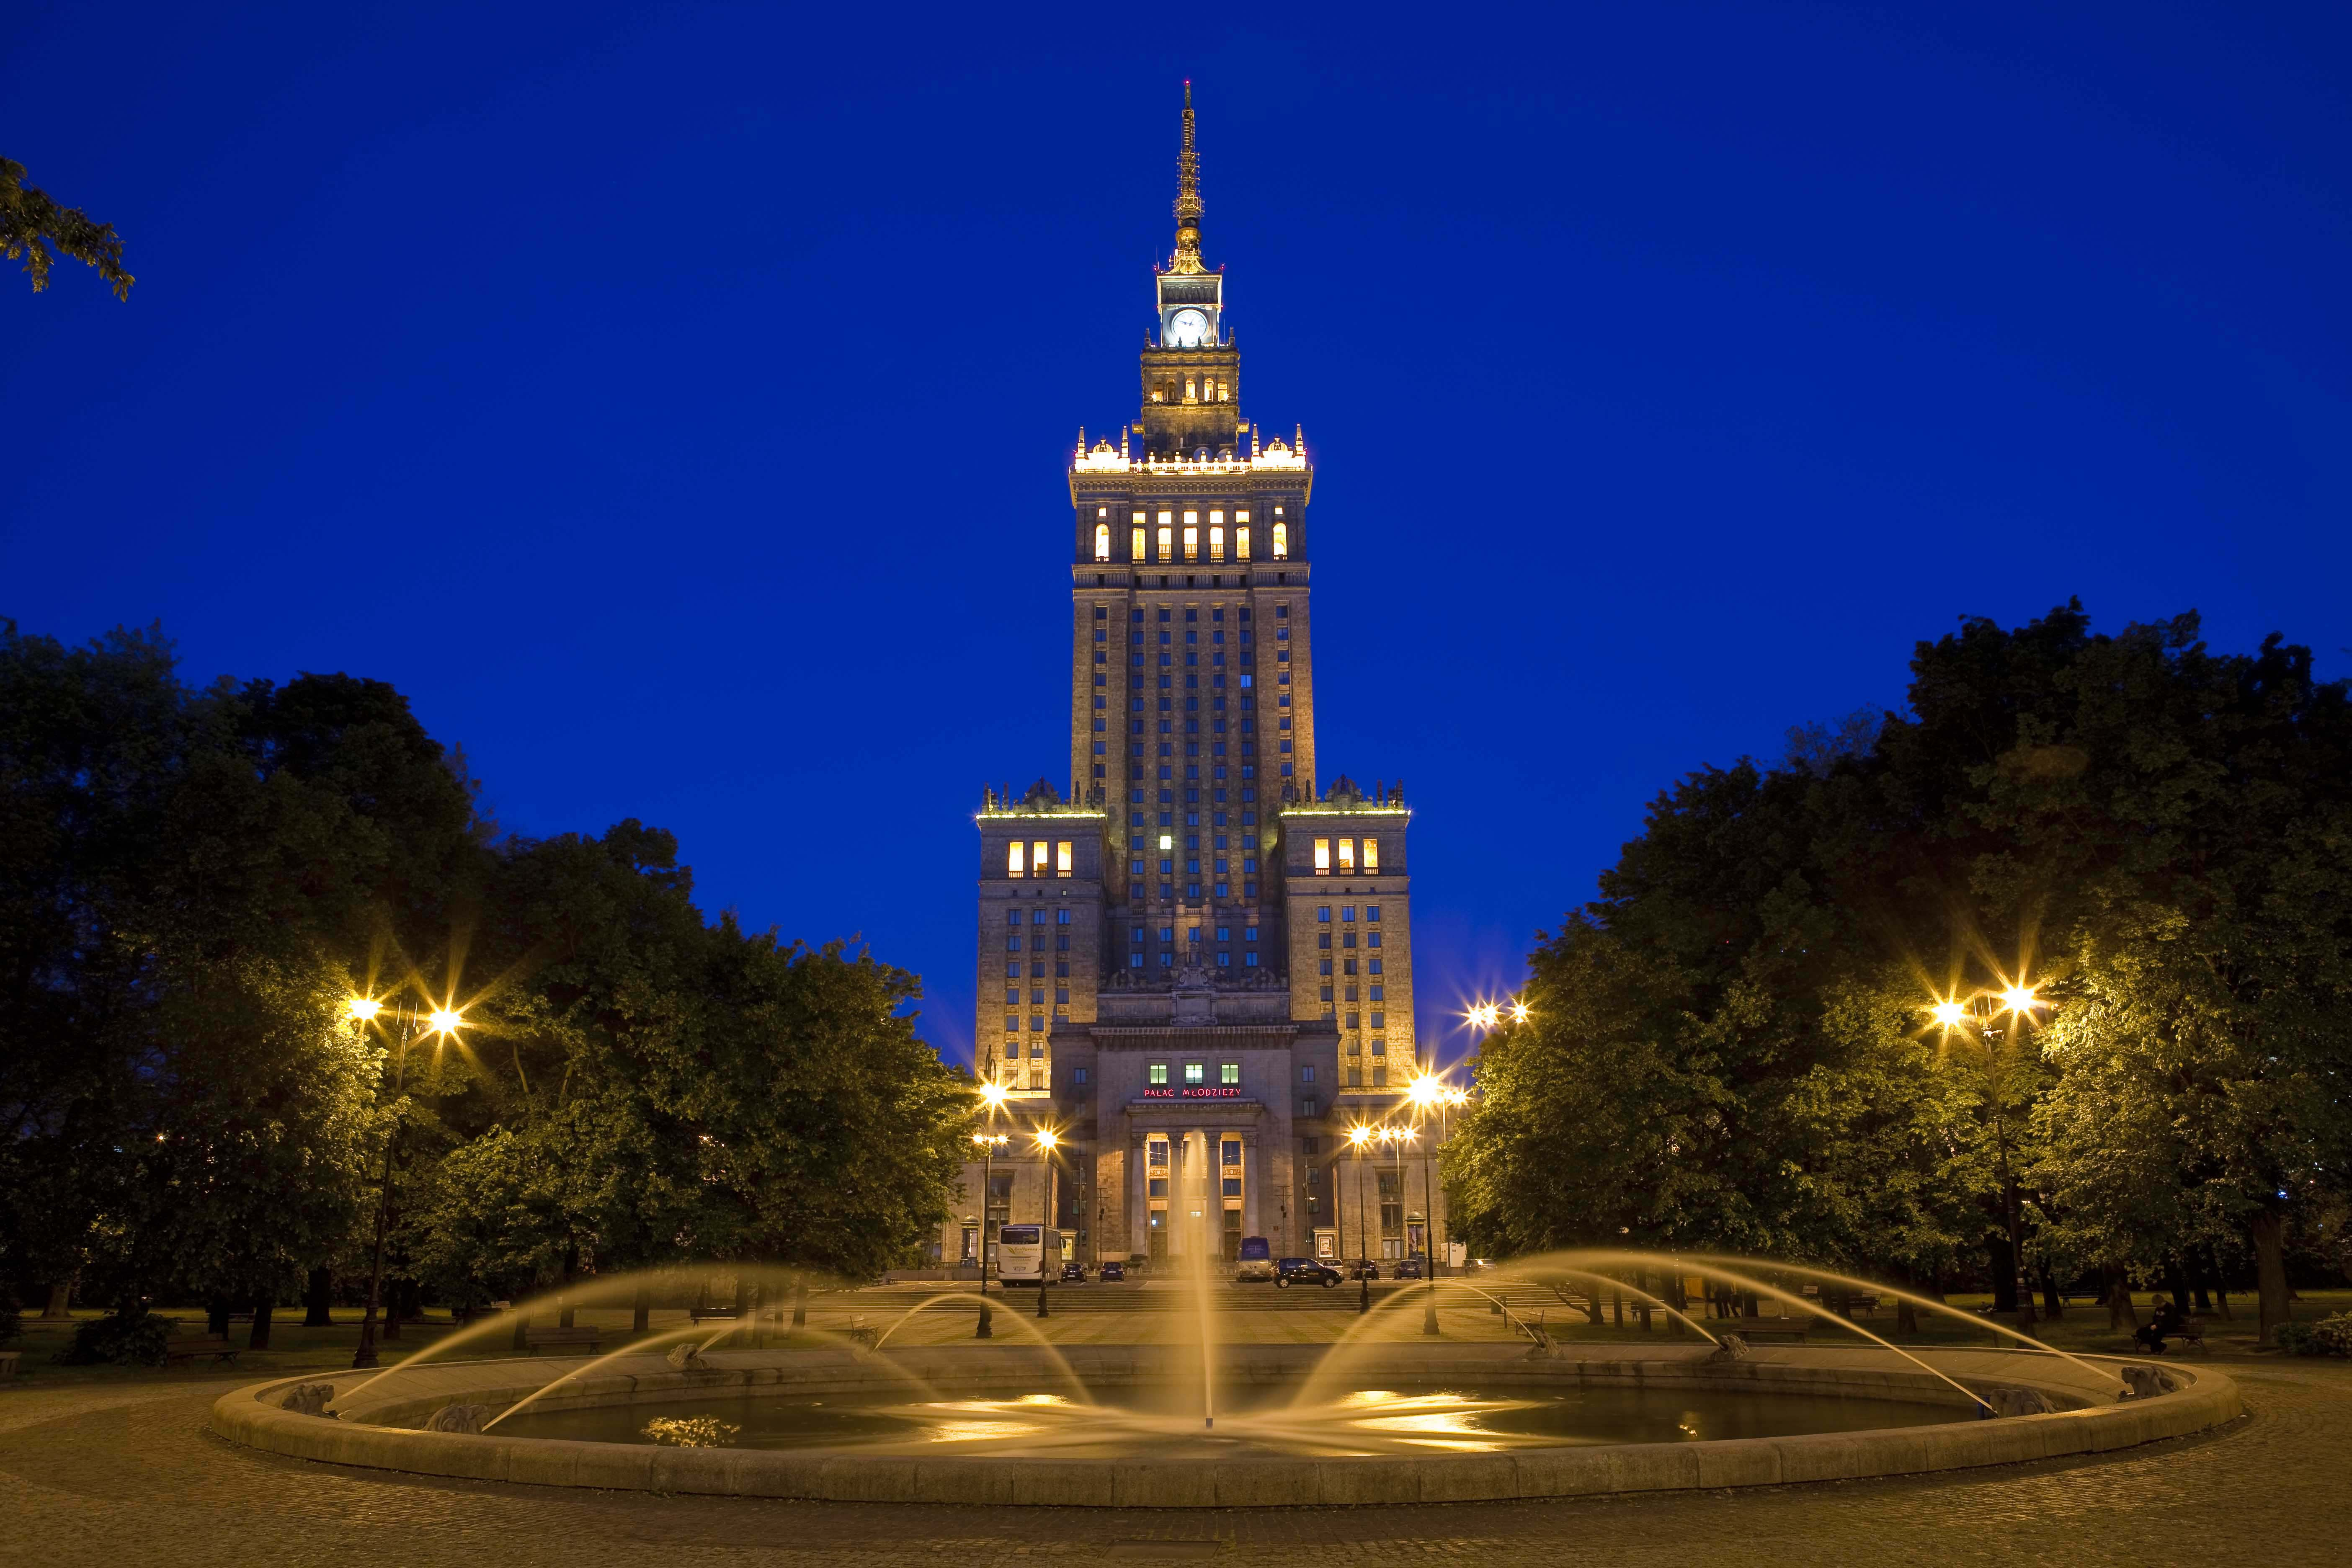 The Car Company Warsaw >> Palace of Culture and Science by night | AB Poland Travel